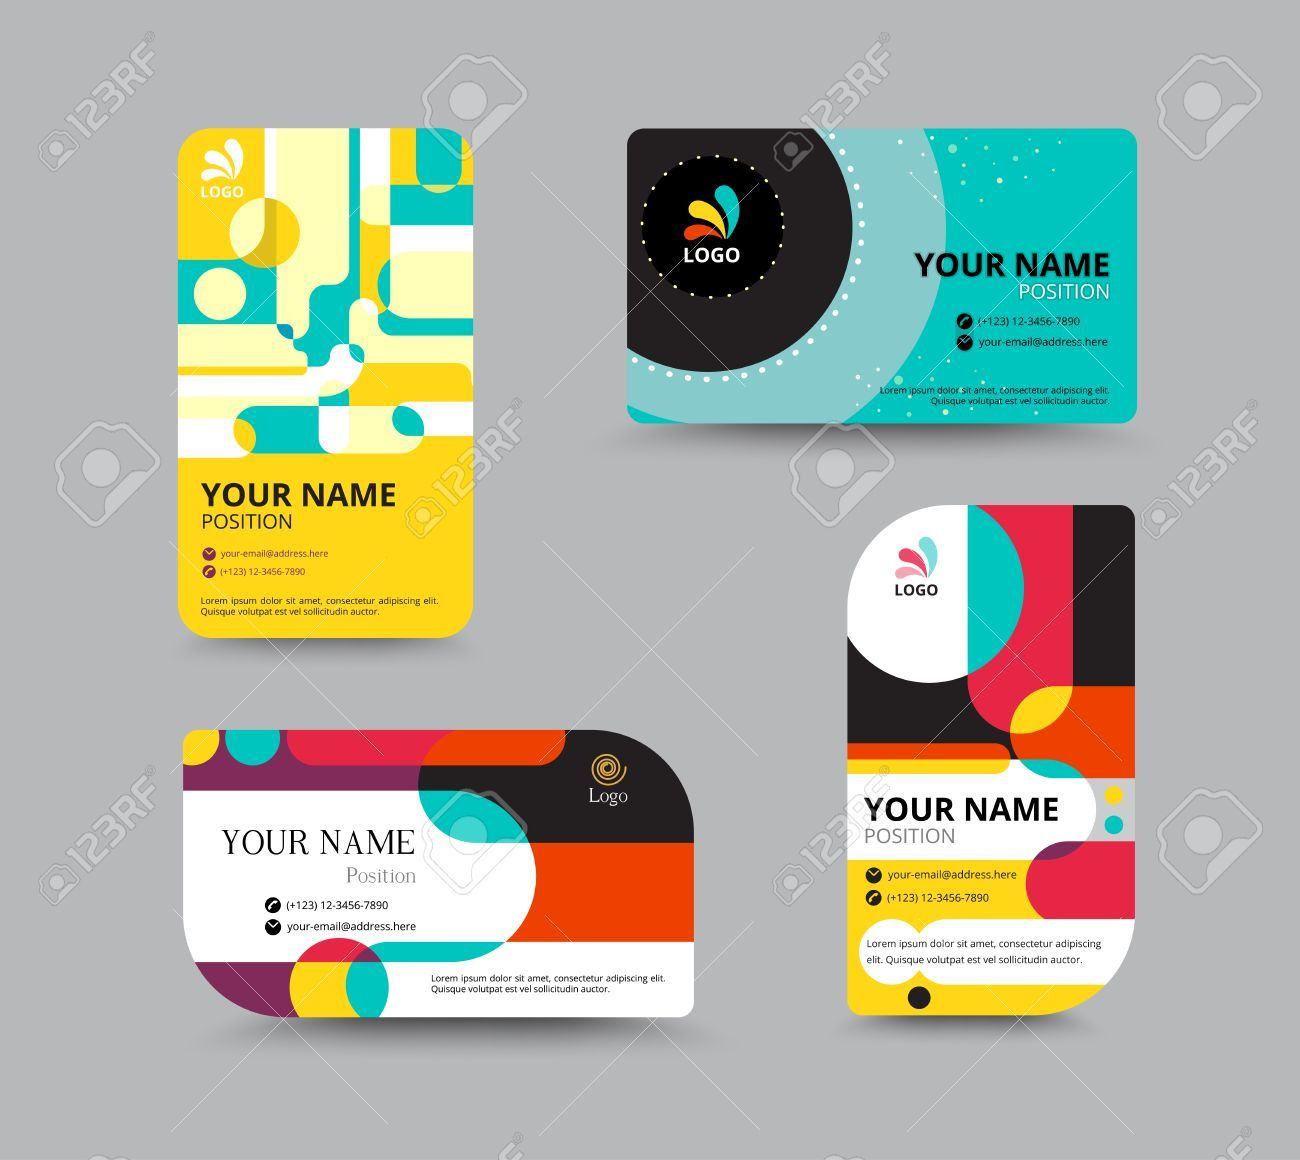 001 Simple Name Tag Design Template Inspiration  Free Download PsdFull